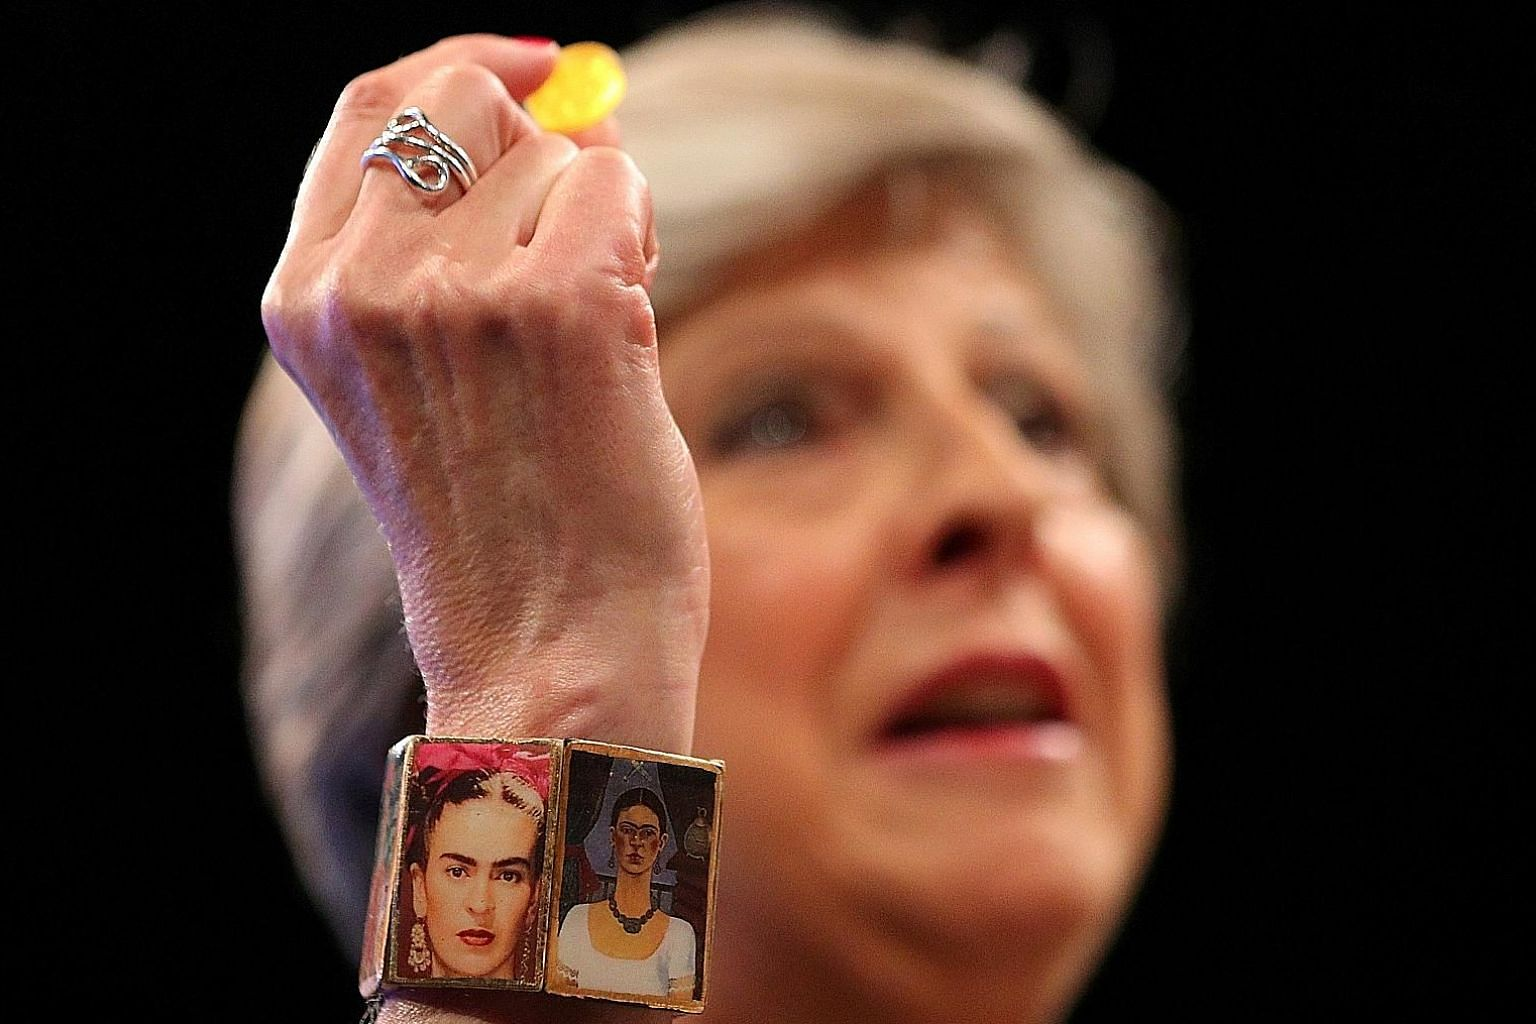 British PM Theresa May, with a bracelet bearing images of Mexican artist Frida Kahlo, holding a sweet passed to her after she was seized by a coughing fit as she addressed her party in Manchester on Wednesday.